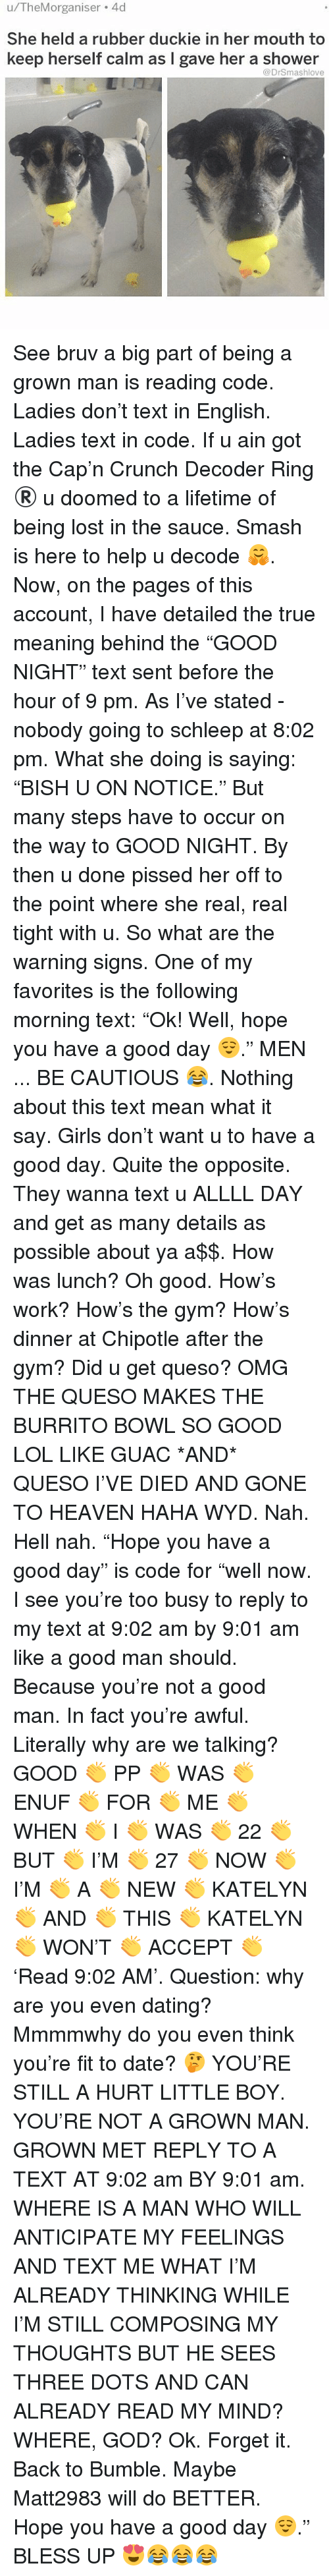 "Bless Up, Chipotle, and Dating: u/TheMorganiser 4d  She held a rubber duckie in her mouth to  keep herself calm as I gave her a shower  @DrSmashlove See bruv a big part of being a grown man is reading code. Ladies don't text in English. Ladies text in code. If u ain got the Cap'n Crunch Decoder Ring ®️ u doomed to a lifetime of being lost in the sauce. Smash is here to help u decode 🤗. Now, on the pages of this account, I have detailed the true meaning behind the ""GOOD NIGHT"" text sent before the hour of 9 pm. As I've stated - nobody going to schleep at 8:02 pm. What she doing is saying: ""BISH U ON NOTICE."" But many steps have to occur on the way to GOOD NIGHT. By then u done pissed her off to the point where she real, real tight with u. So what are the warning signs. One of my favorites is the following morning text: ""Ok! Well, hope you have a good day 😌."" MEN ... BE CAUTIOUS 😂. Nothing about this text mean what it say. Girls don't want u to have a good day. Quite the opposite. They wanna text u ALLLL DAY and get as many details as possible about ya a$$. How was lunch? Oh good. How's work? How's the gym? How's dinner at Chipotle after the gym? Did u get queso? OMG THE QUESO MAKES THE BURRITO BOWL SO GOOD LOL LIKE GUAC *AND* QUESO I'VE DIED AND GONE TO HEAVEN HAHA WYD. Nah. Hell nah. ""Hope you have a good day"" is code for ""well now. I see you're too busy to reply to my text at 9:02 am by 9:01 am like a good man should. Because you're not a good man. In fact you're awful. Literally why are we talking? GOOD 👏 PP 👏 WAS 👏 ENUF 👏 FOR 👏 ME 👏 WHEN 👏 I 👏 WAS 👏 22 👏 BUT 👏 I'M 👏 27 👏 NOW 👏 I'M 👏 A 👏 NEW 👏 KATELYN 👏 AND 👏 THIS 👏 KATELYN 👏 WON'T 👏 ACCEPT 👏 'Read 9:02 AM'. Question: why are you even dating? Mmmmwhy do you even think you're fit to date? 🤔 YOU'RE STILL A HURT LITTLE BOY. YOU'RE NOT A GROWN MAN. GROWN MET REPLY TO A TEXT AT 9:02 am BY 9:01 am. WHERE IS A MAN WHO WILL ANTICIPATE MY FEELINGS AND TEXT ME WHAT I'M ALREADY THINKING WHILE I'M STILL COMPOSING MY THOUGHTS BUT HE SEES THREE DOTS AND CAN ALREADY READ MY MIND? WHERE, GOD? Ok. Forget it. Back to Bumble. Maybe Matt2983 will do BETTER. Hope you have a good day 😌."" BLESS UP 😍😂😂😂"